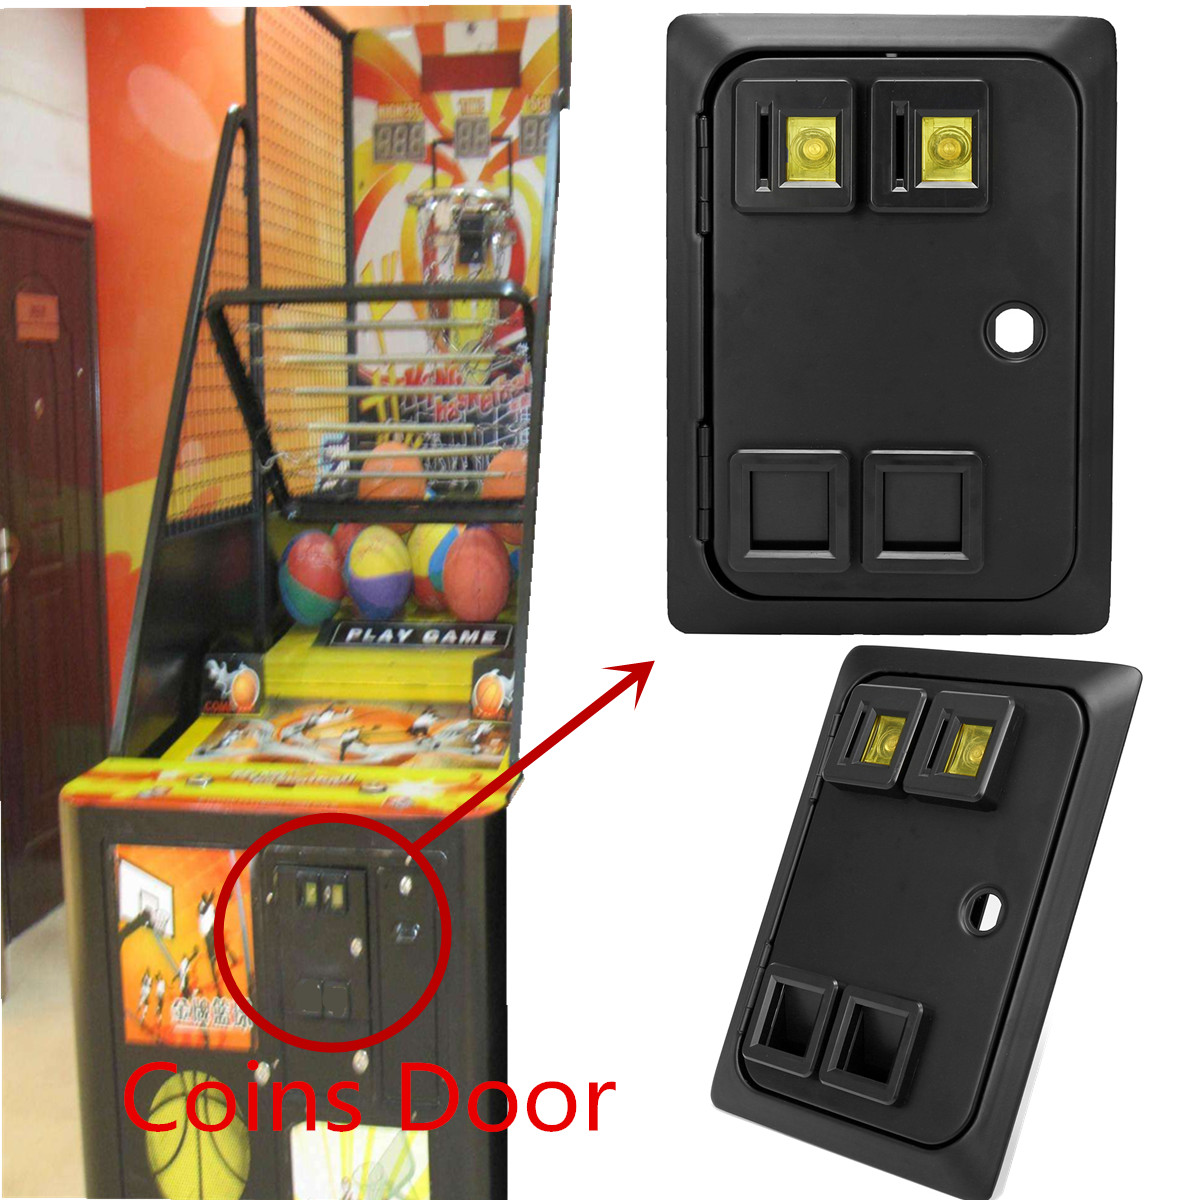 Arcade Or Pinball Game Machine Two Entry Coin Door Wells Gardner Style Coins Door Gate With Mech Coin Operated Game Console Part